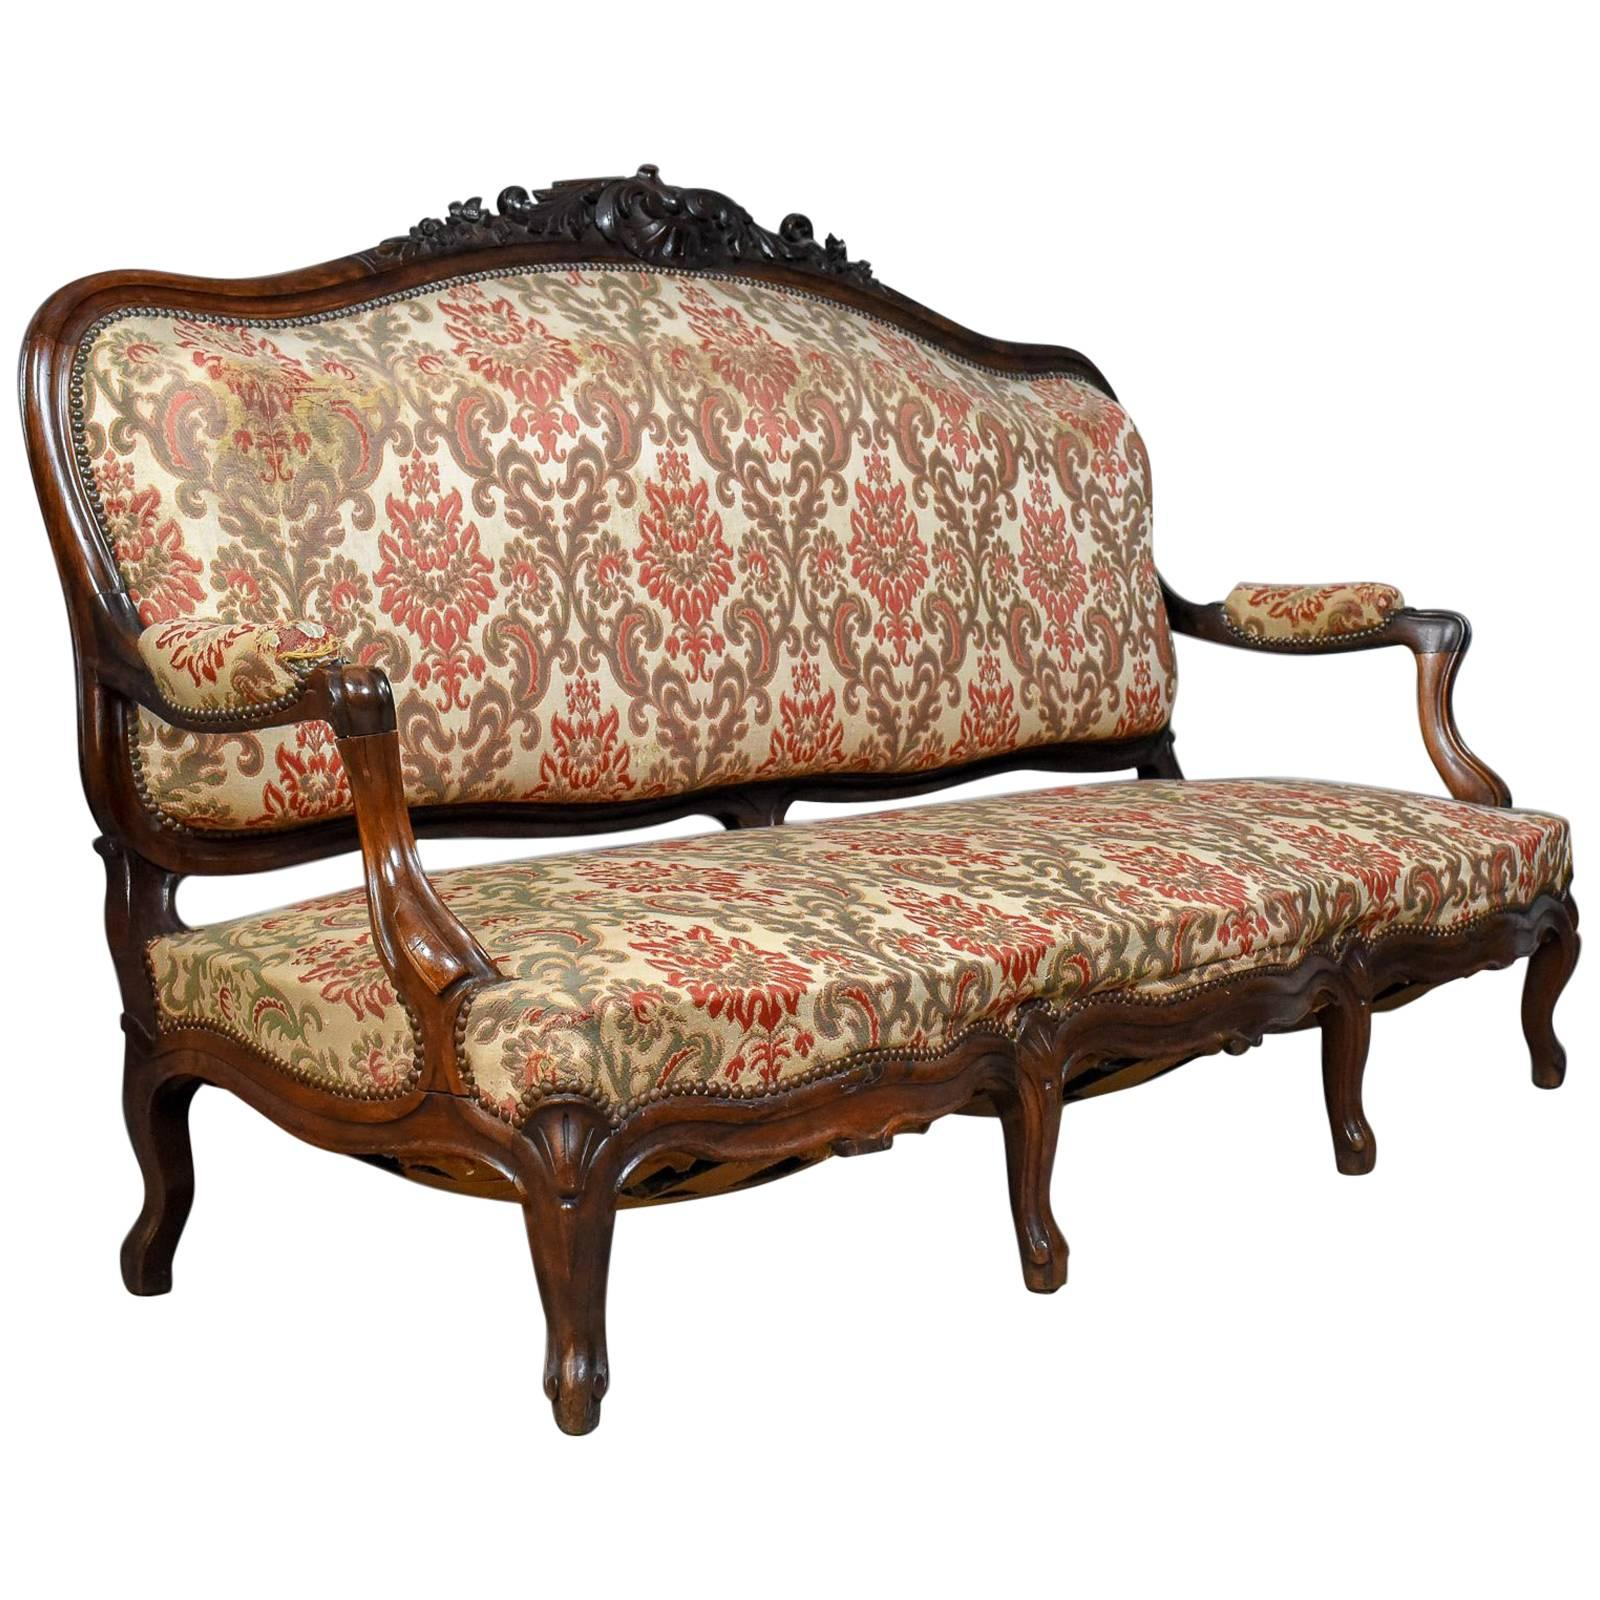 Victorian Antique Settee, Rosewood, English, Three Seat Sofa, Circa 1850